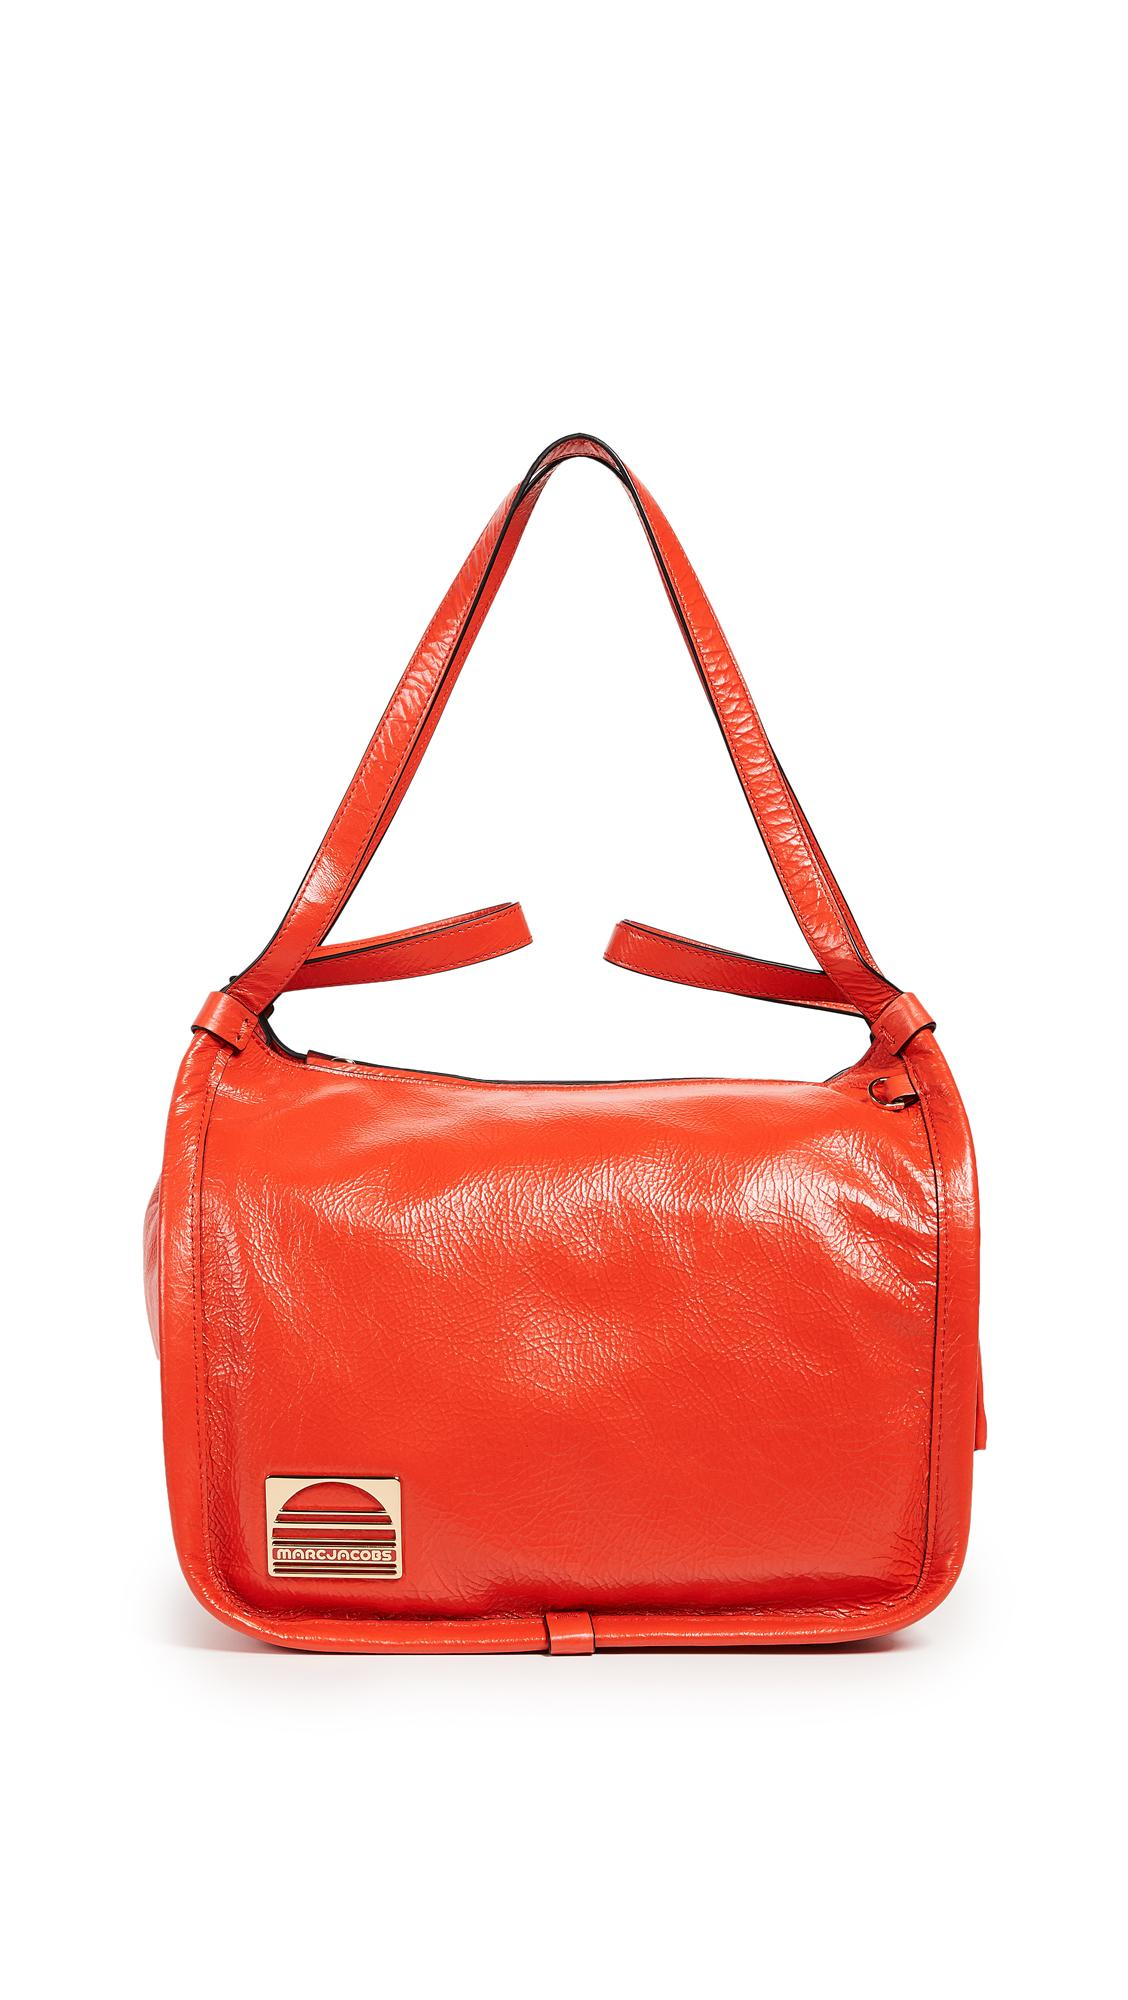 Marc Jacobs Sport Tote Bag In Poppy Red